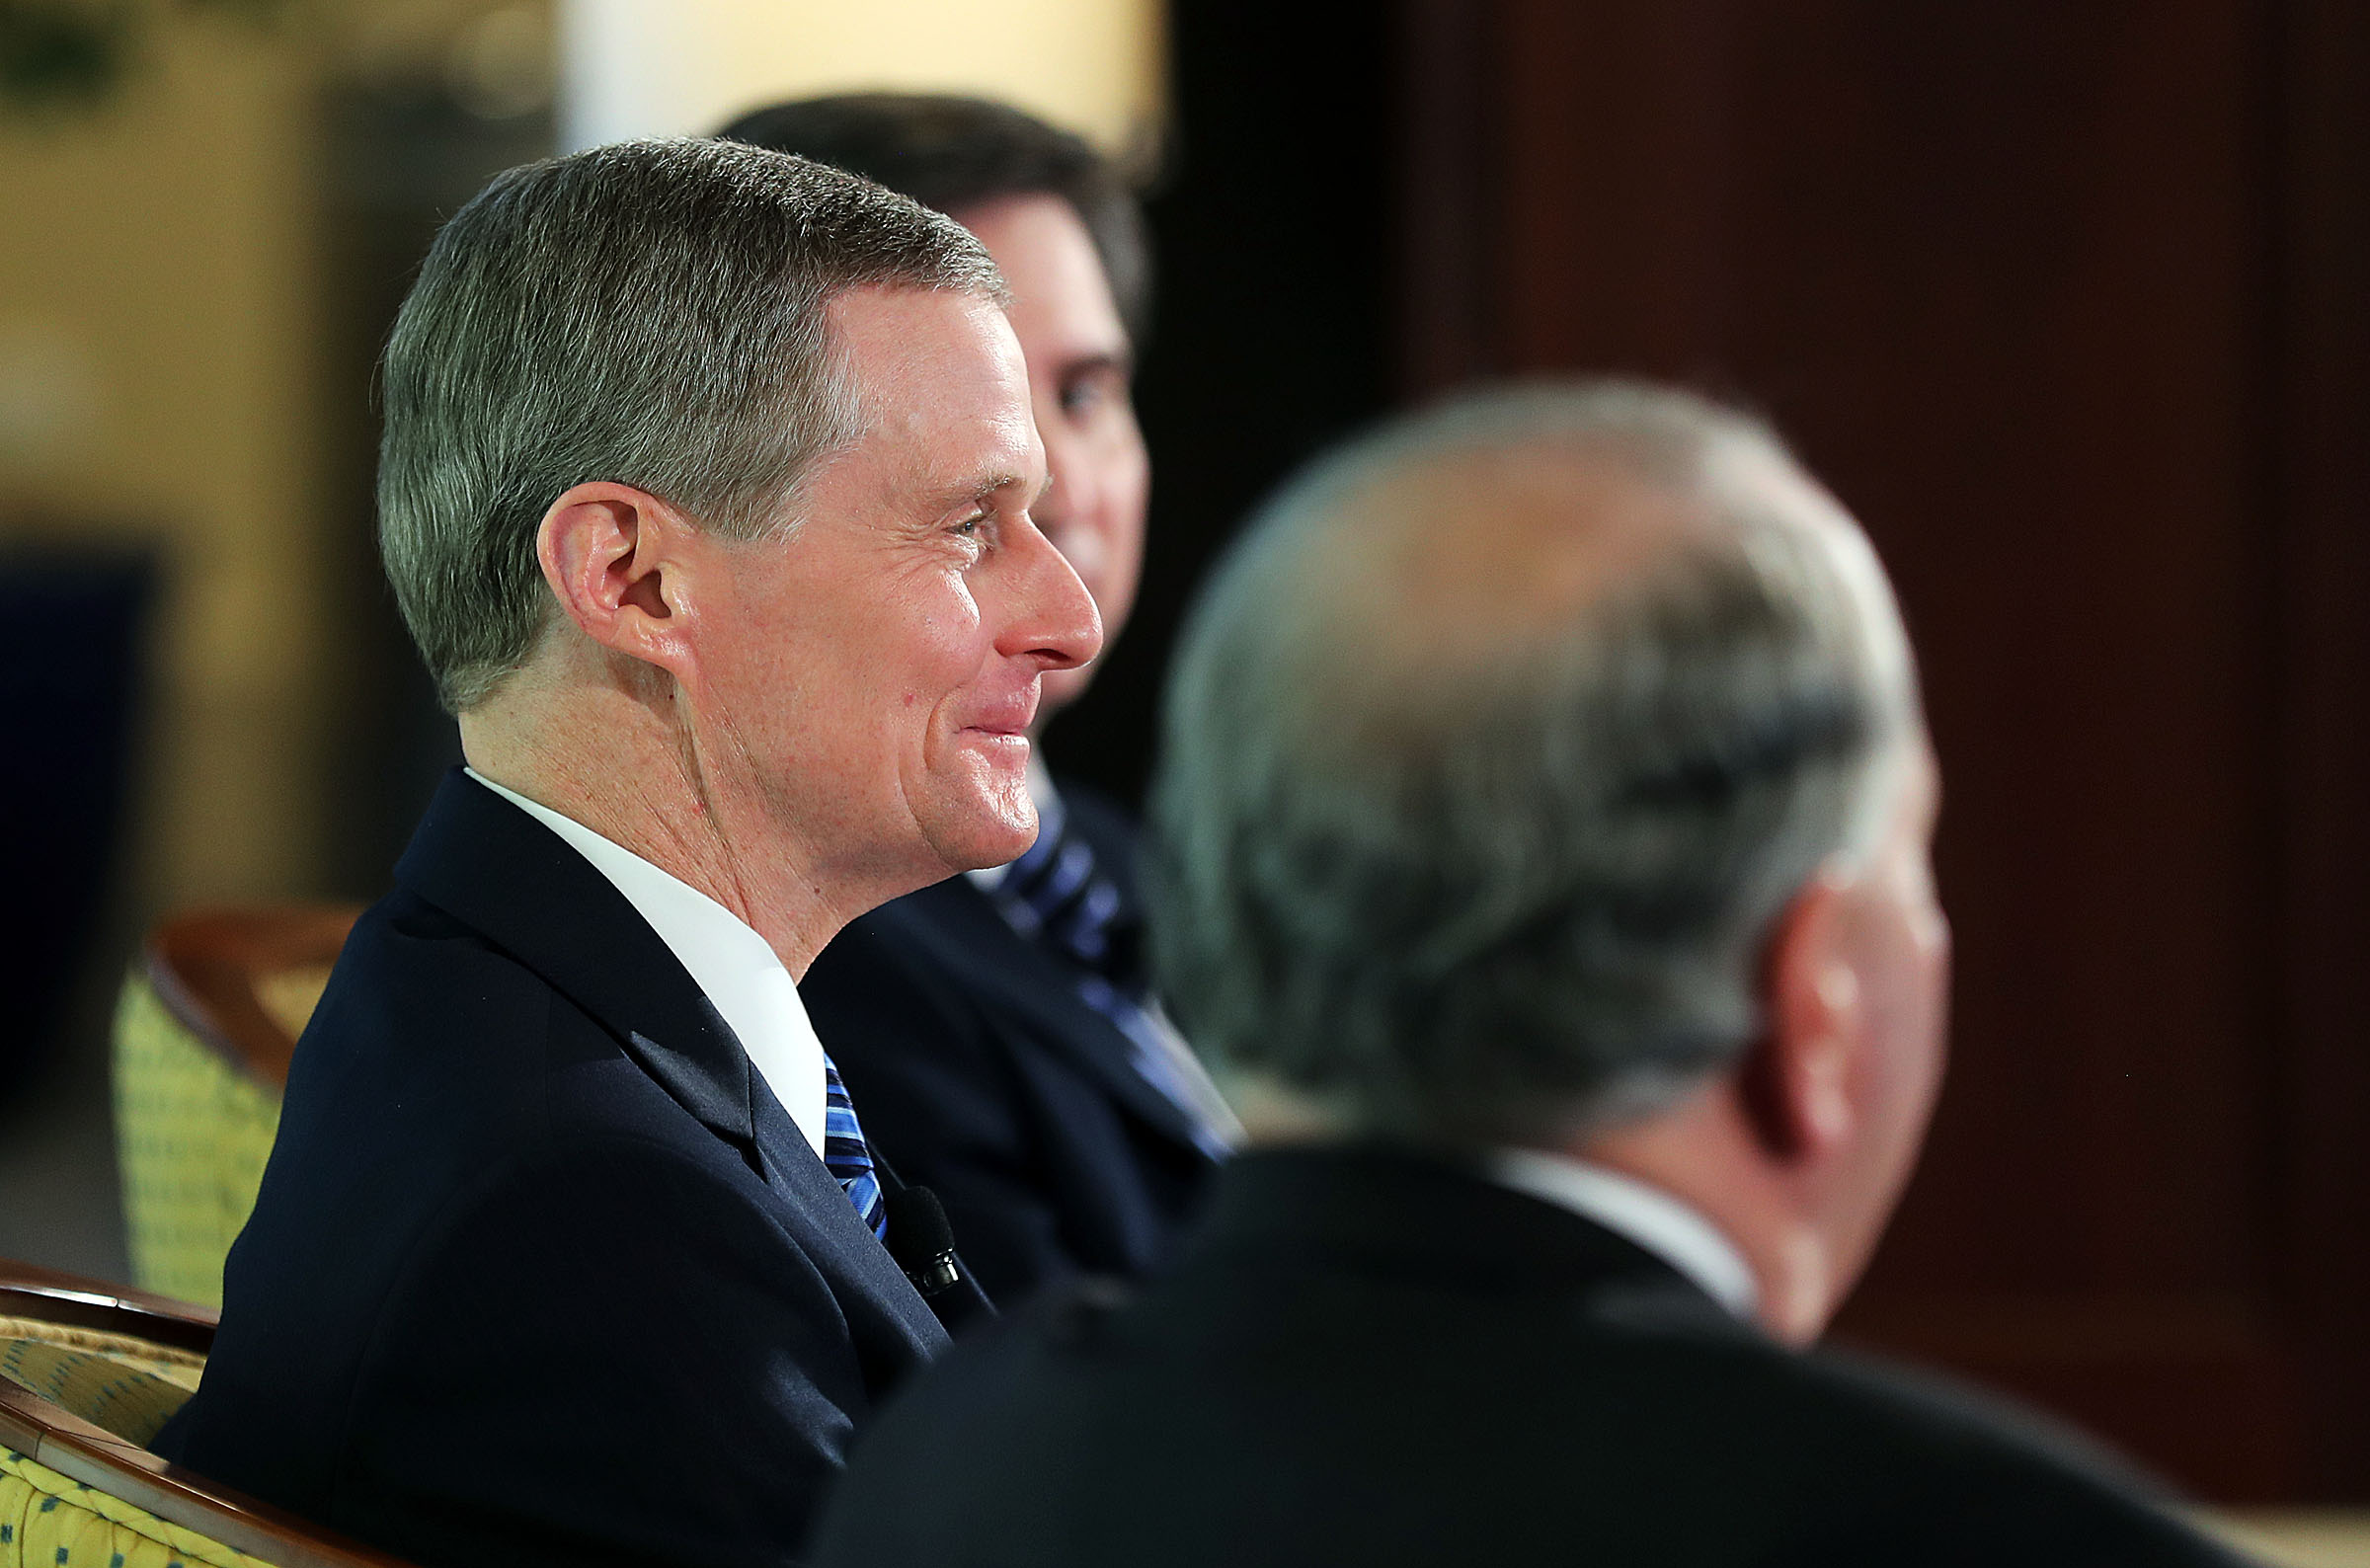 Elder David A. Bednar of the Quorum of the Twelve Apostles smiles during a press conference in the Rome Temple Visitors' Center of The Church of Jesus Christ of Latter-day Saints on Monday, Jan. 14, 2019.